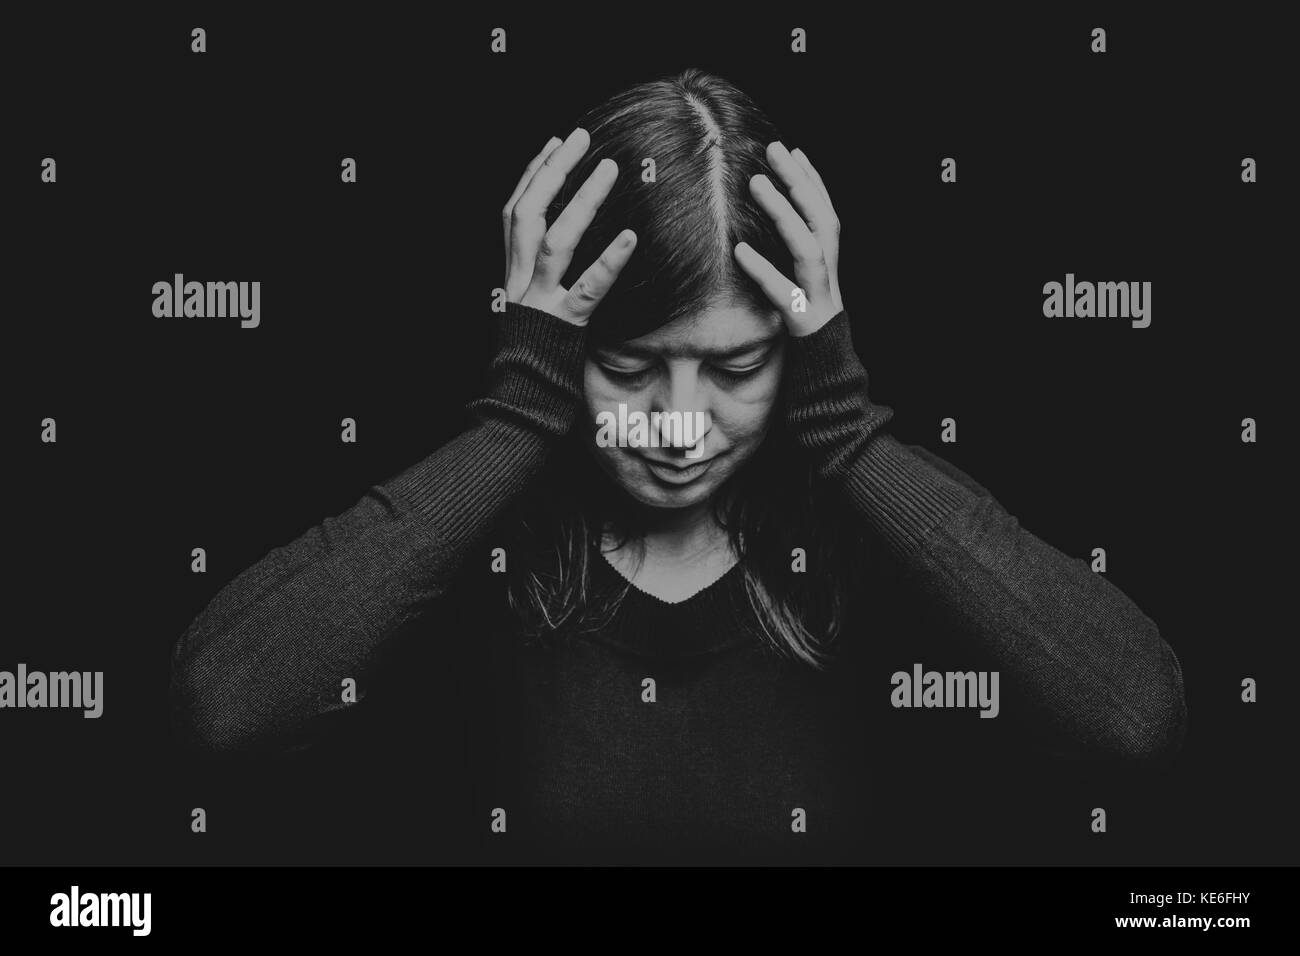 Distressed woman holding the head with the hands on a black or dark background. migraine headache pain depression - Stock Image